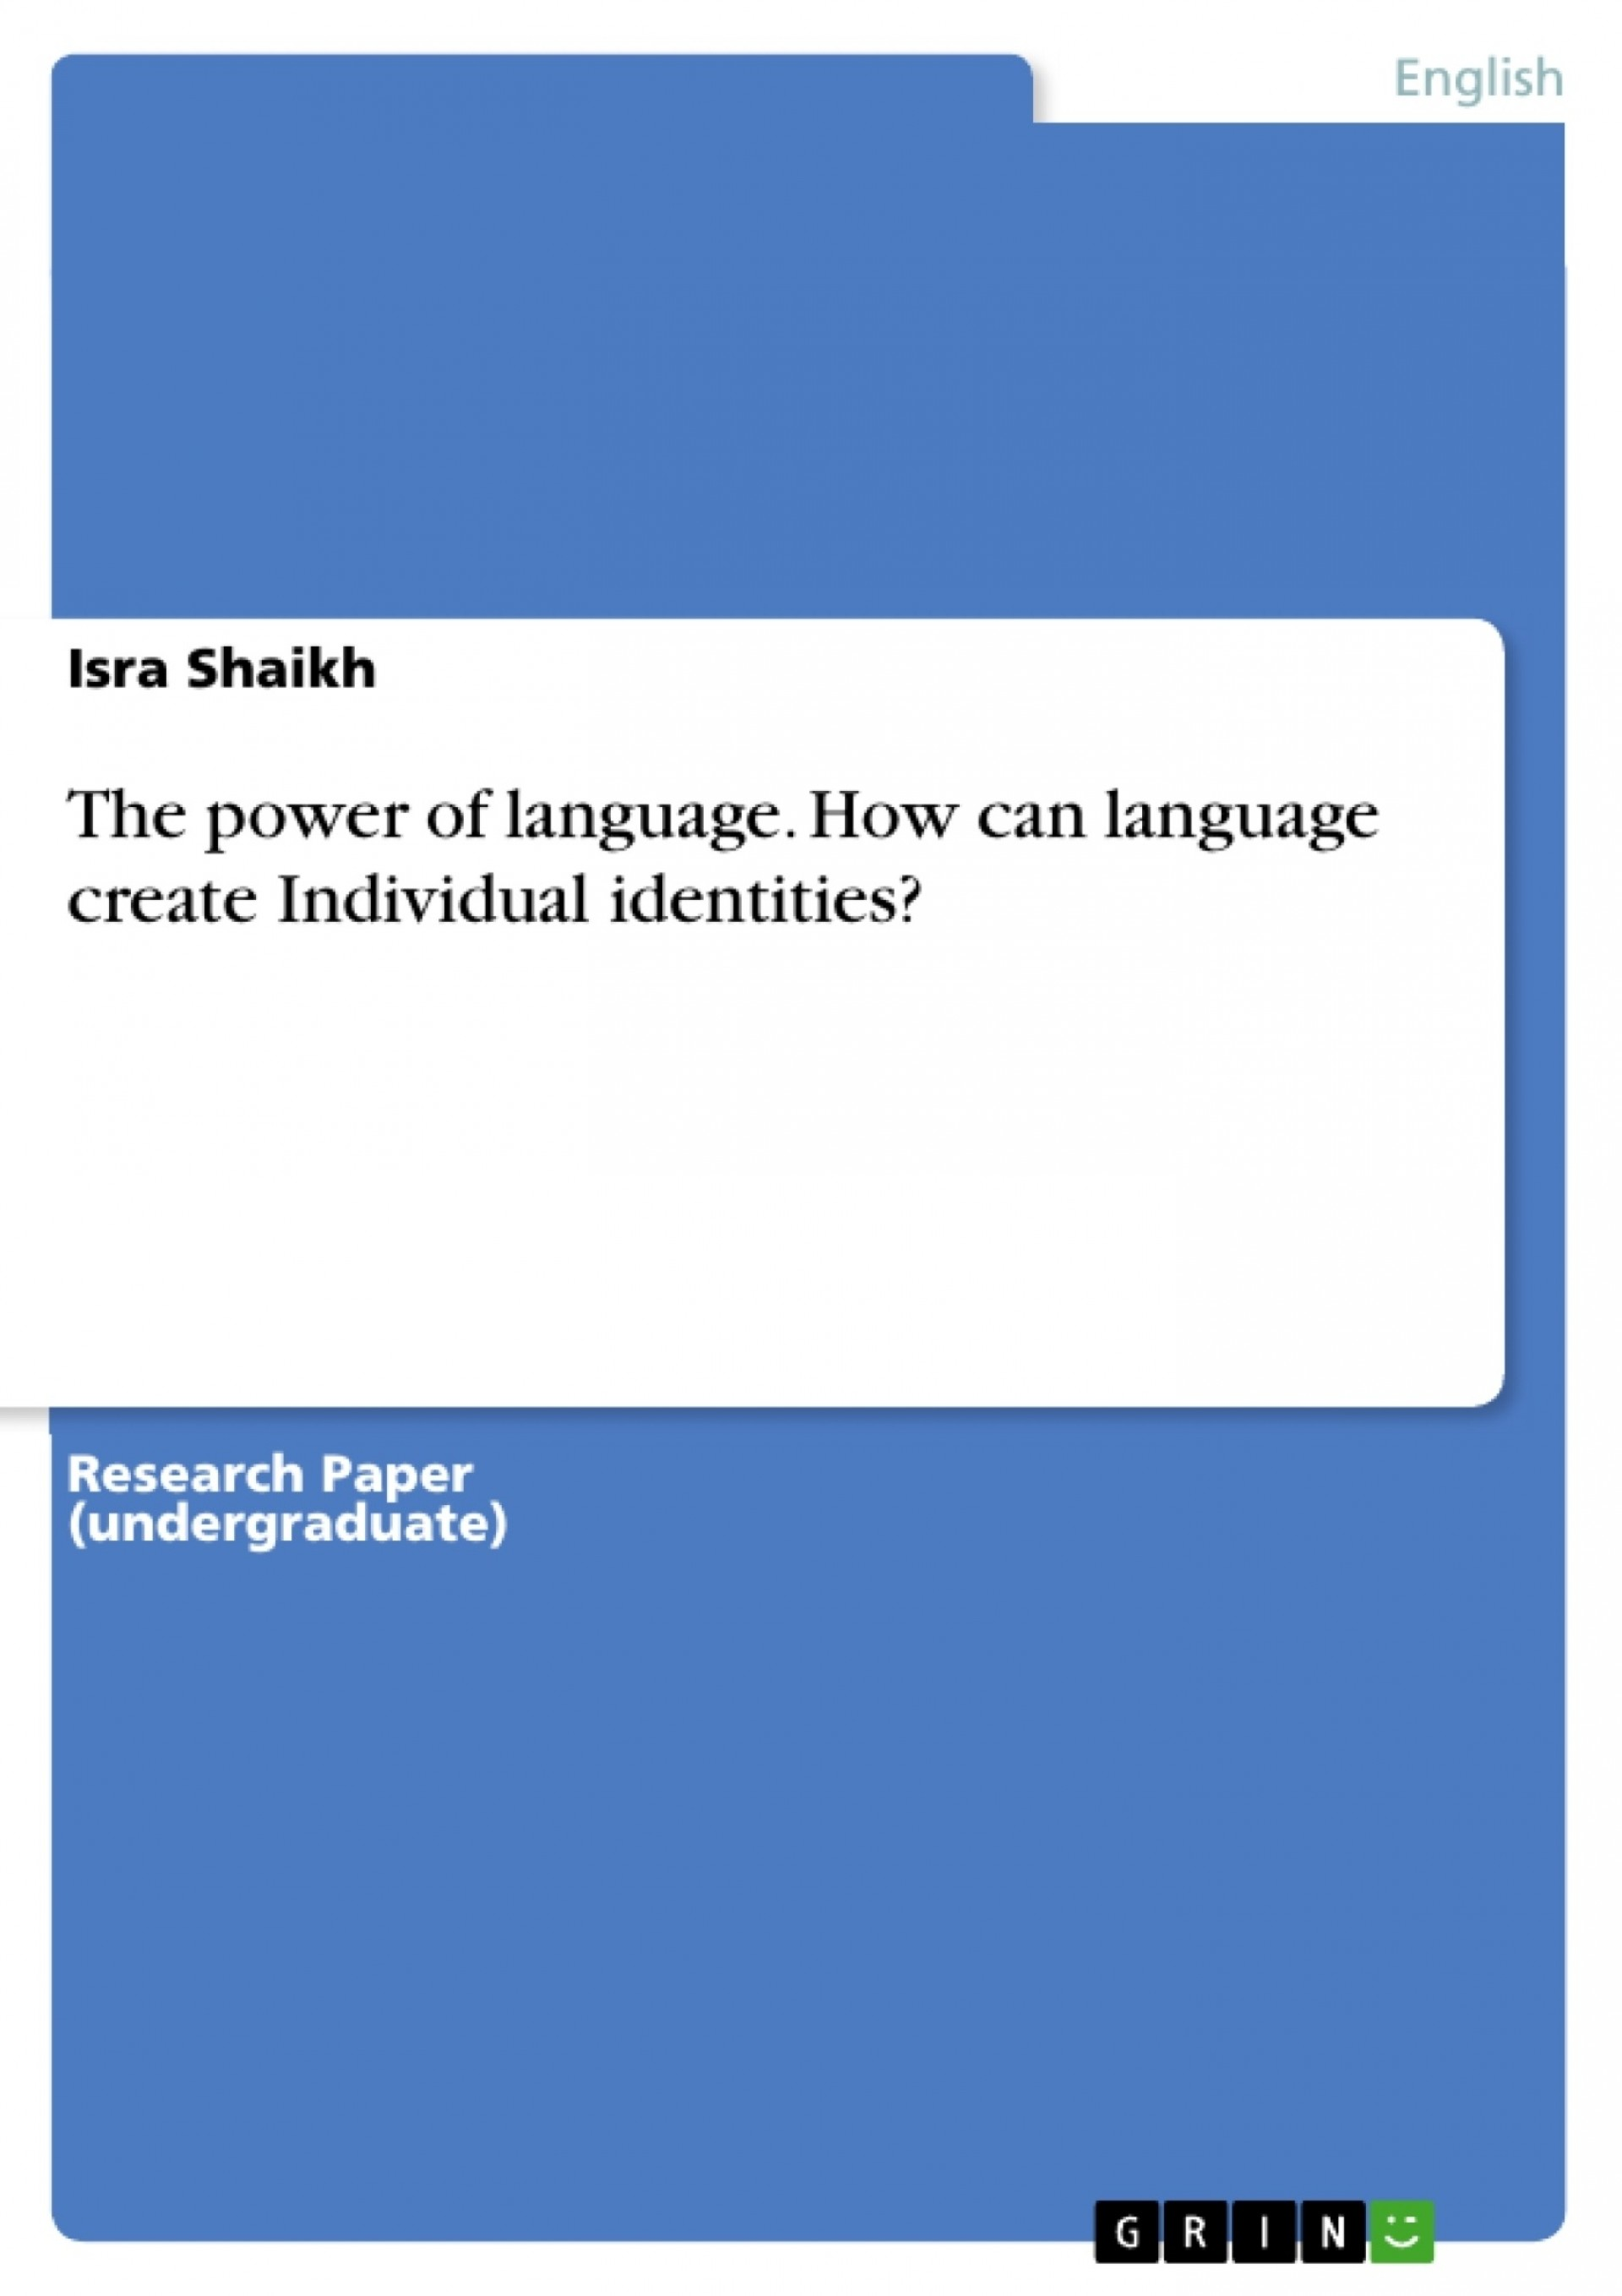 009 465275 0 Research Paper How To Publish As An Marvelous A Undergraduate In India 1920